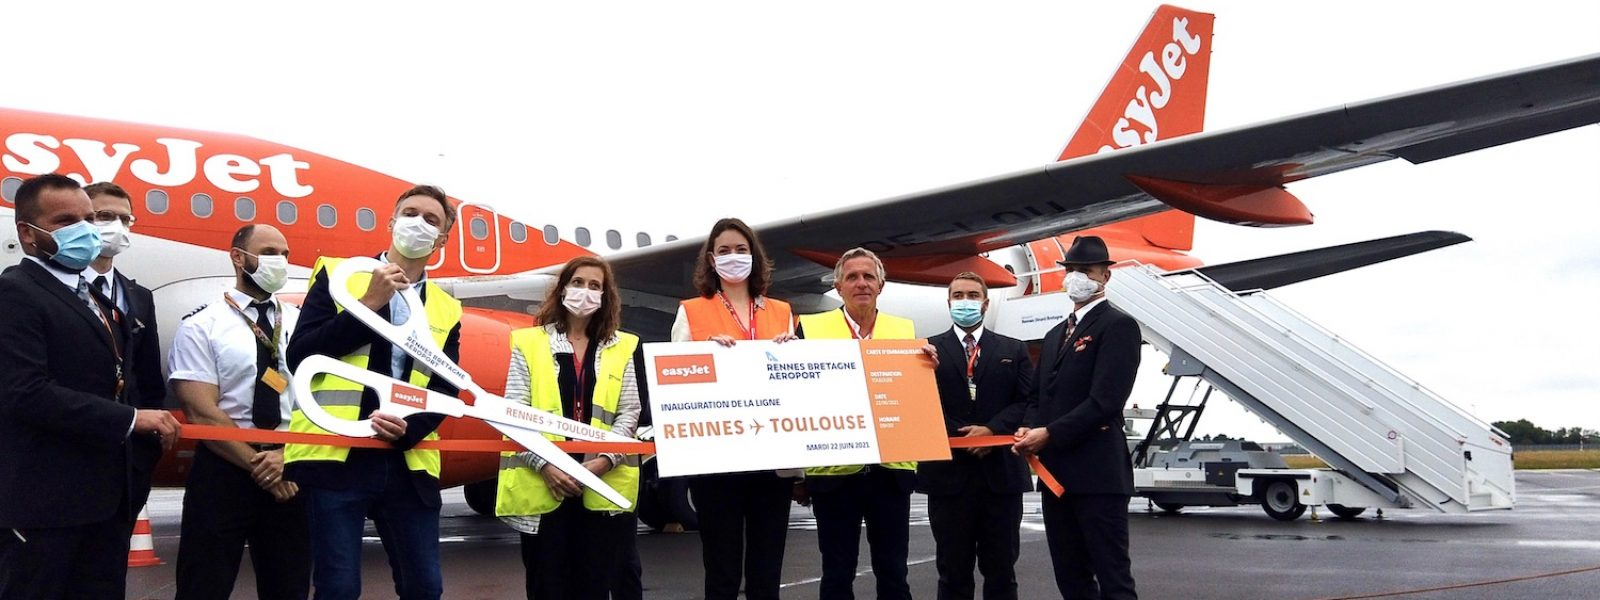 Rennes-toulouse-easyjet